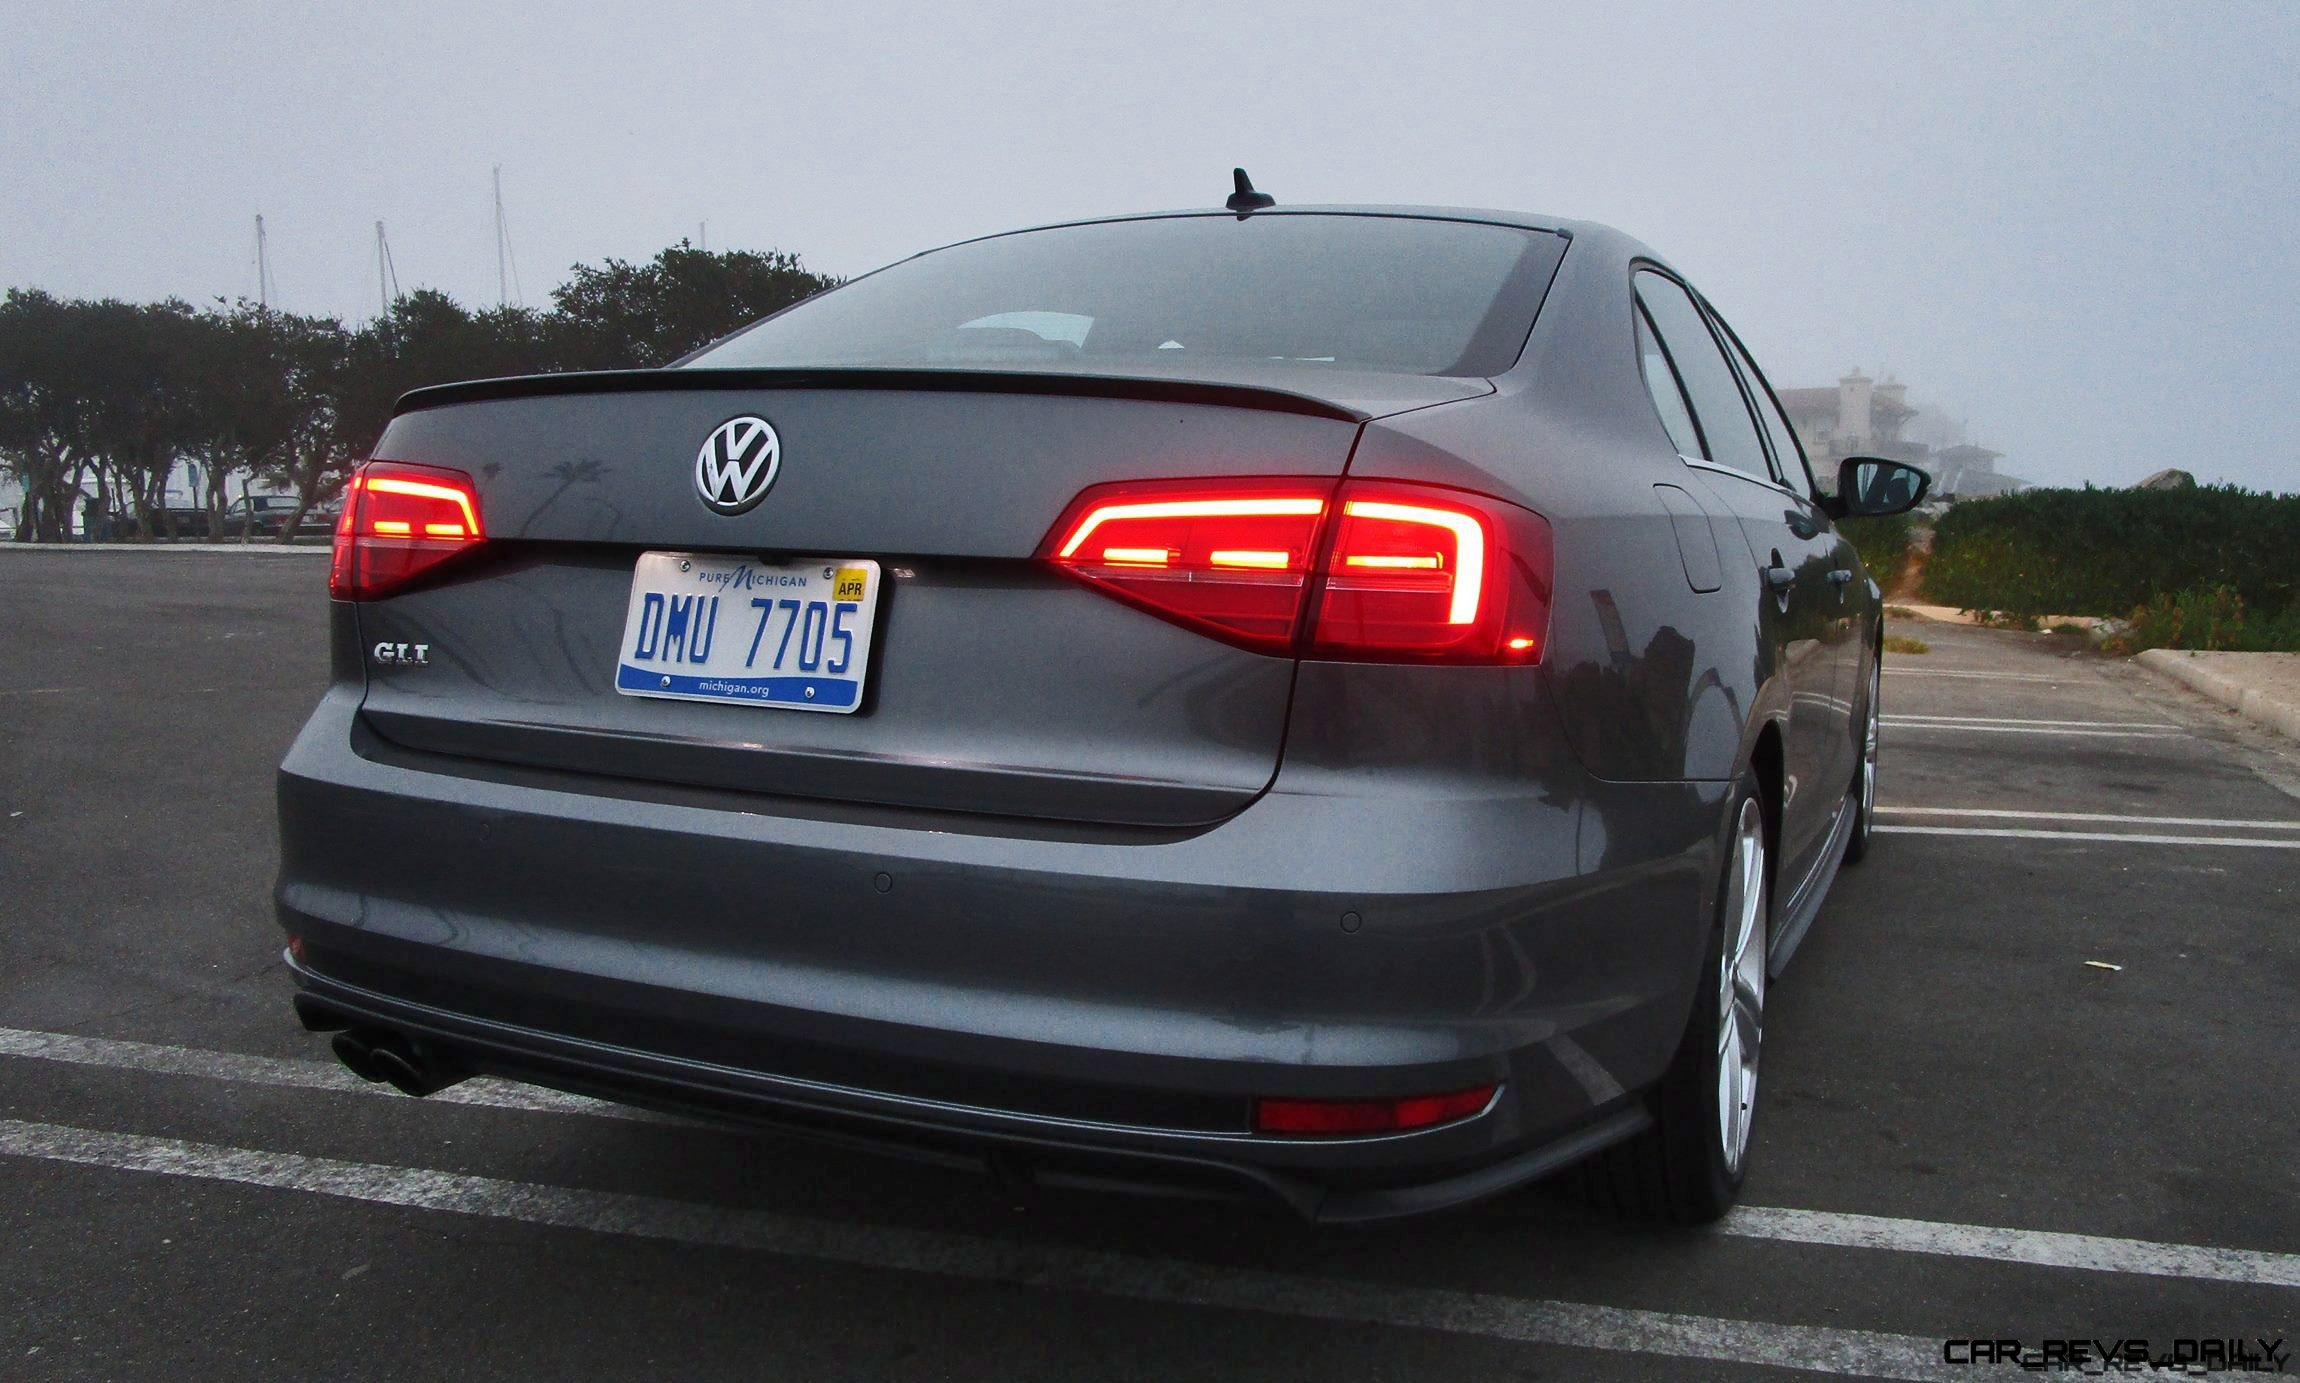 2017 Vw Jetta Gli 2 0t 6mt Road Test Review By Ben Lewis